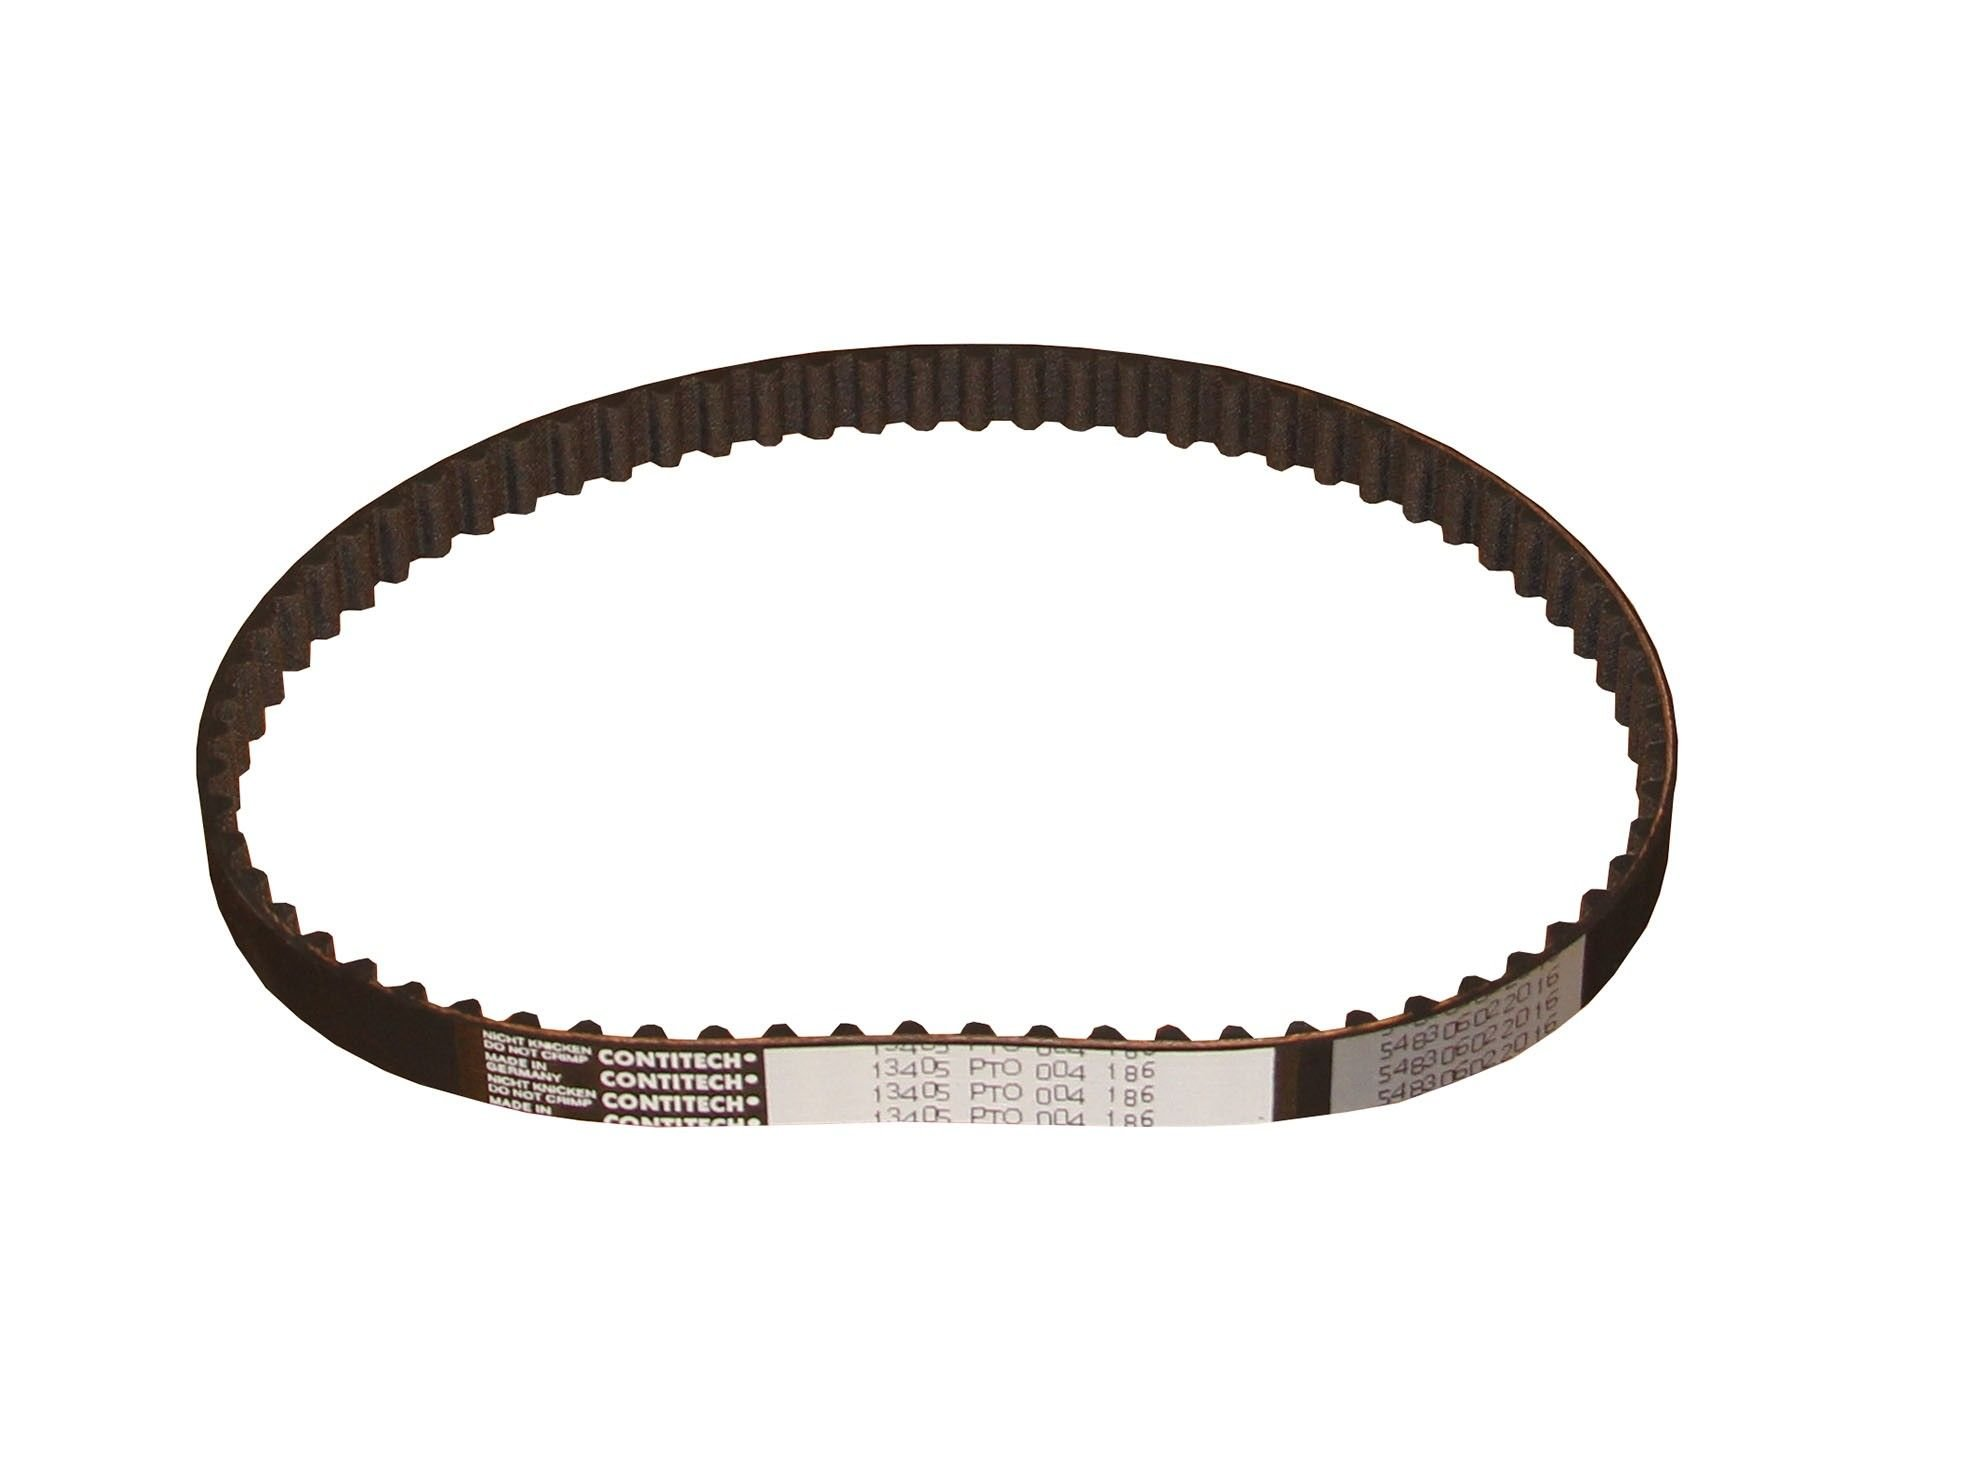 Honda Prelude Engine Timing Belt Replacement Beck Arnley Crp 1992 Balancer 2001 Balance Shaft 4 Cyl 22l Tb186 Interference Eng